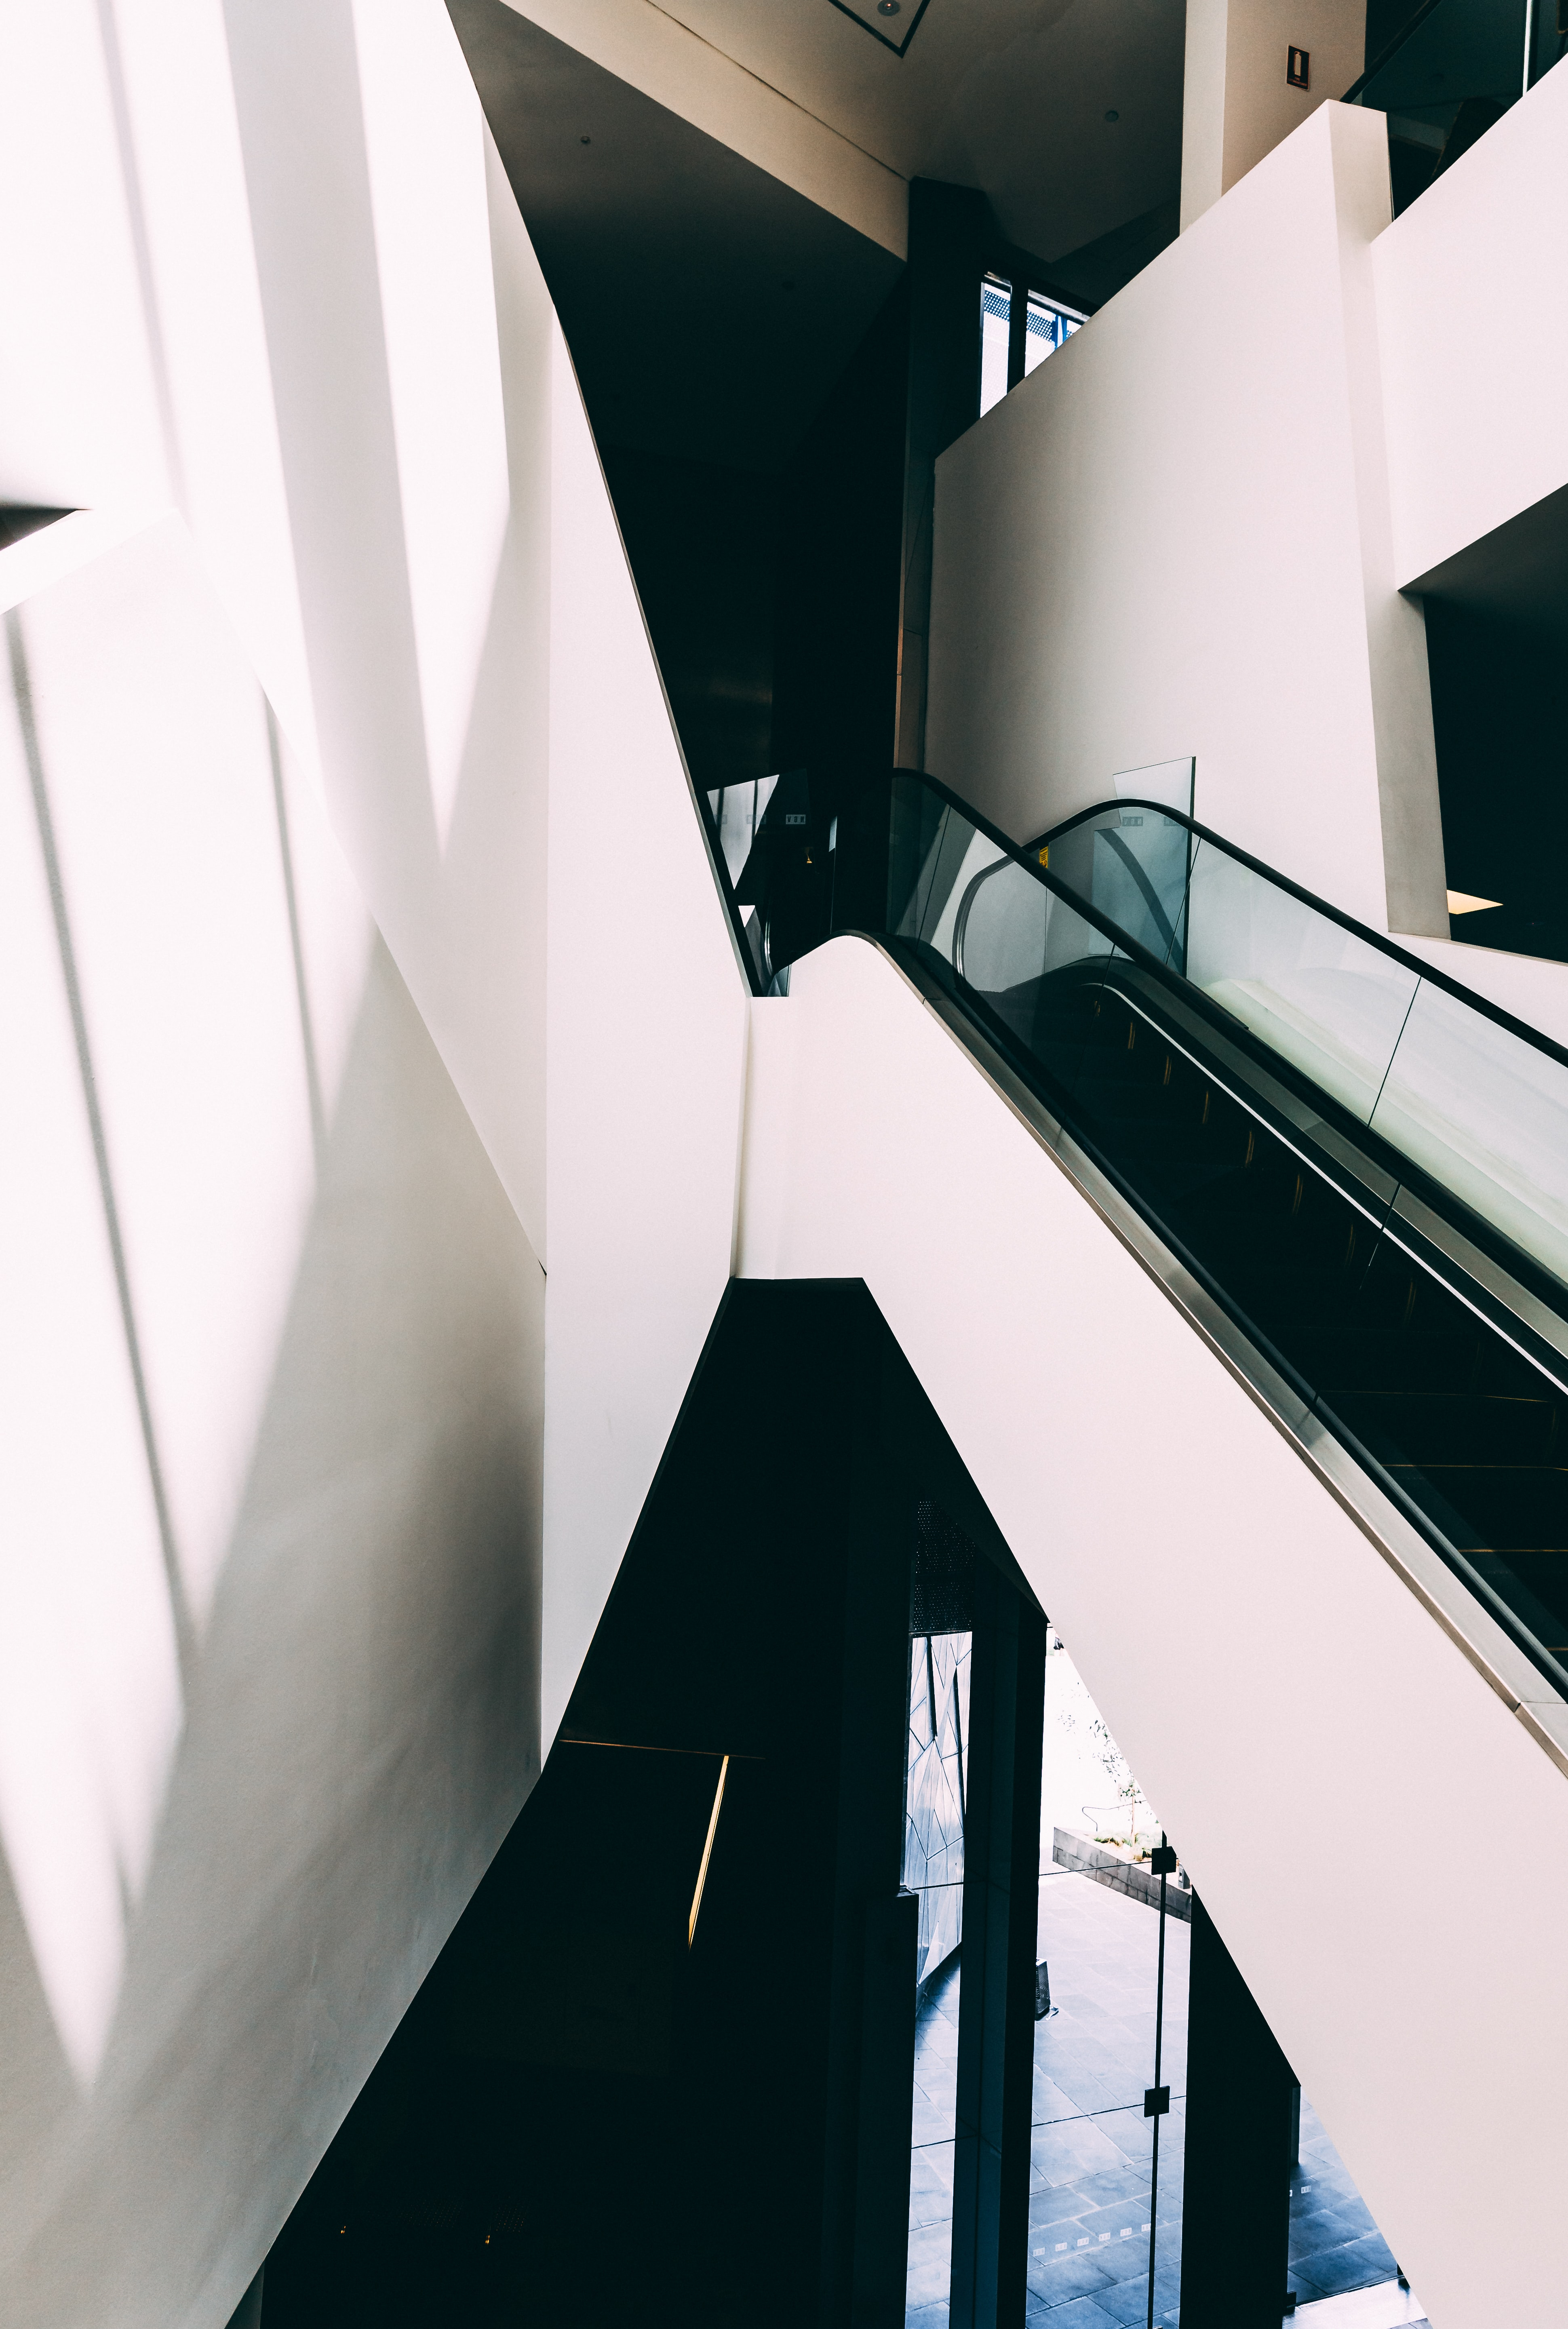 white and black escalator inside building